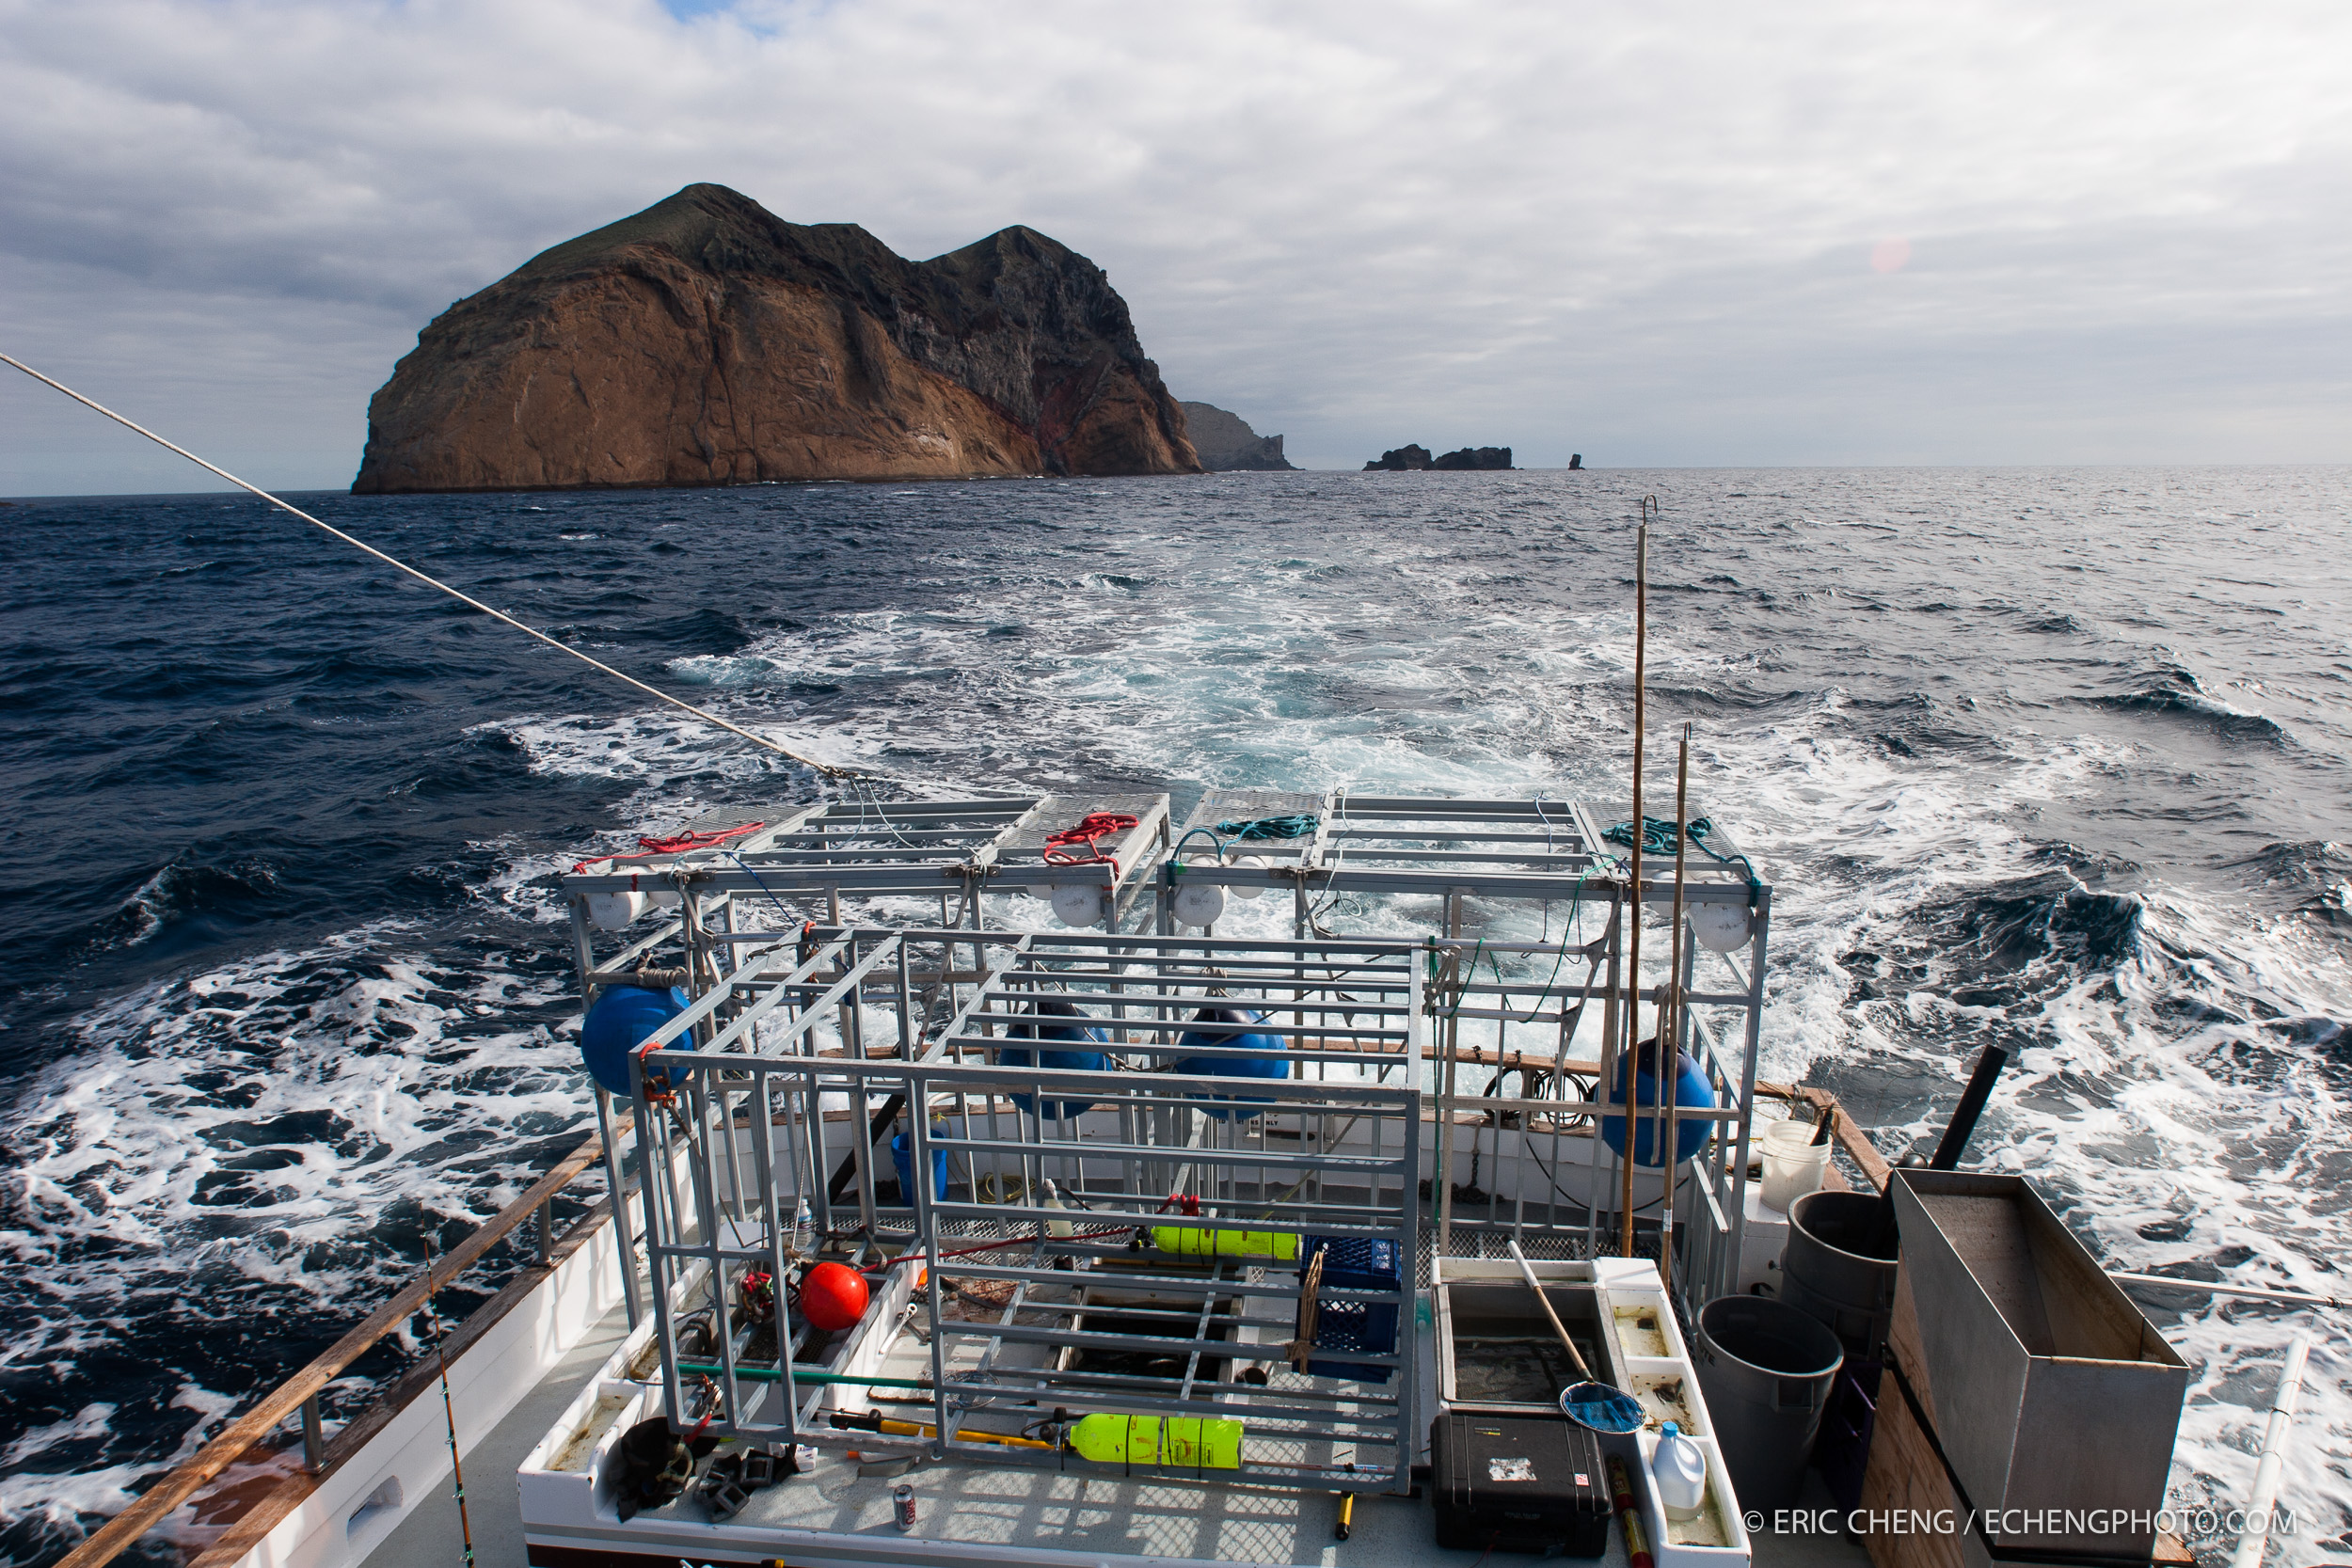 Arrival at Guadalupe Island